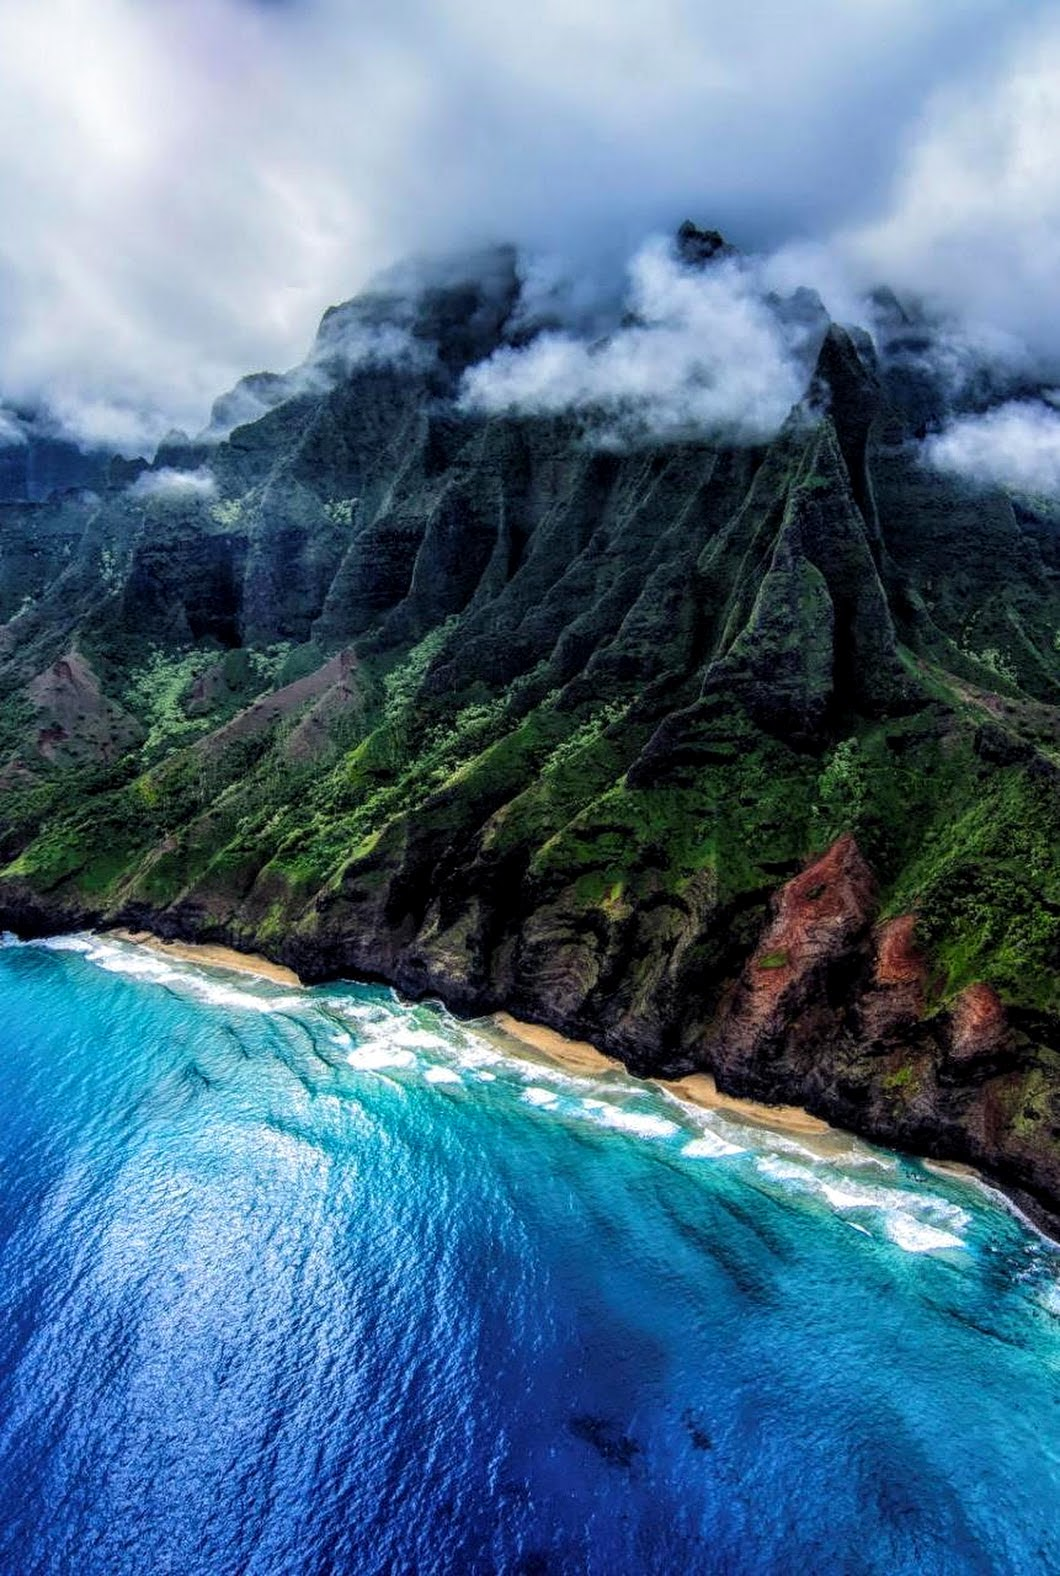 hawaii water nature travel landscape outdoors river summer sky mountain wood rock